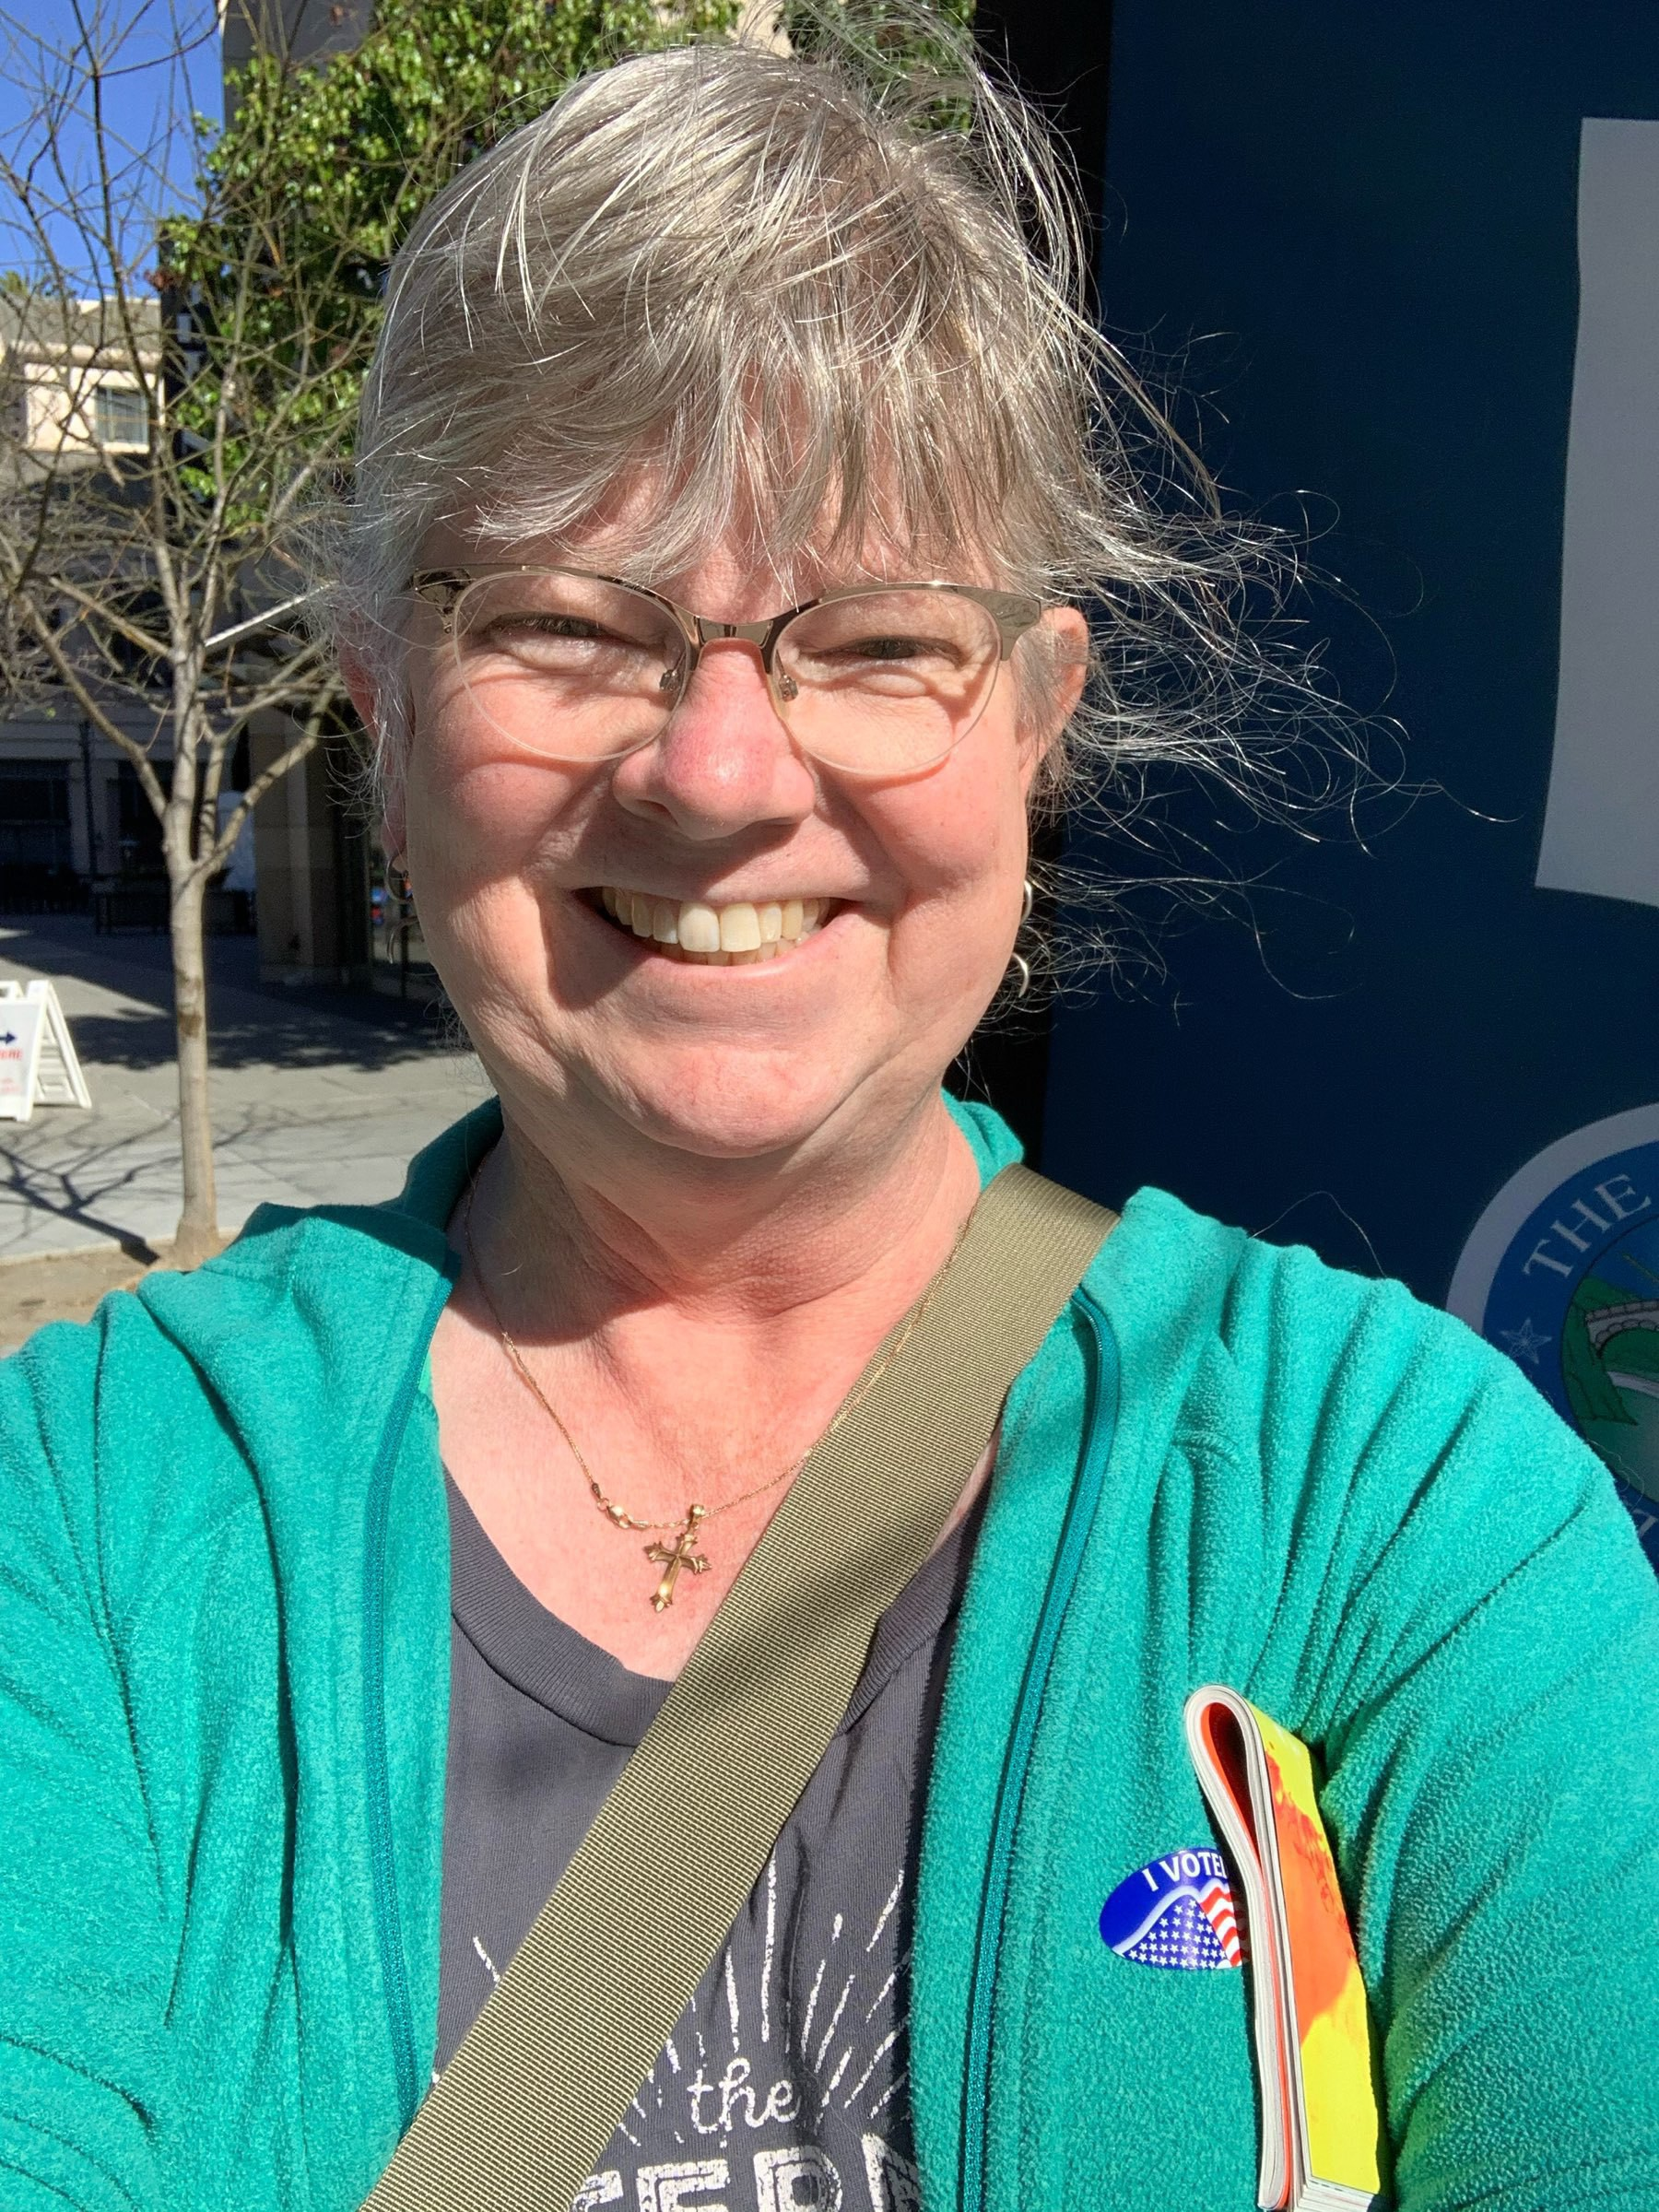 """Smiling blonde white woman with glasses and windblown hair wearing a green jacket with an """"I Voted"""" sticker."""